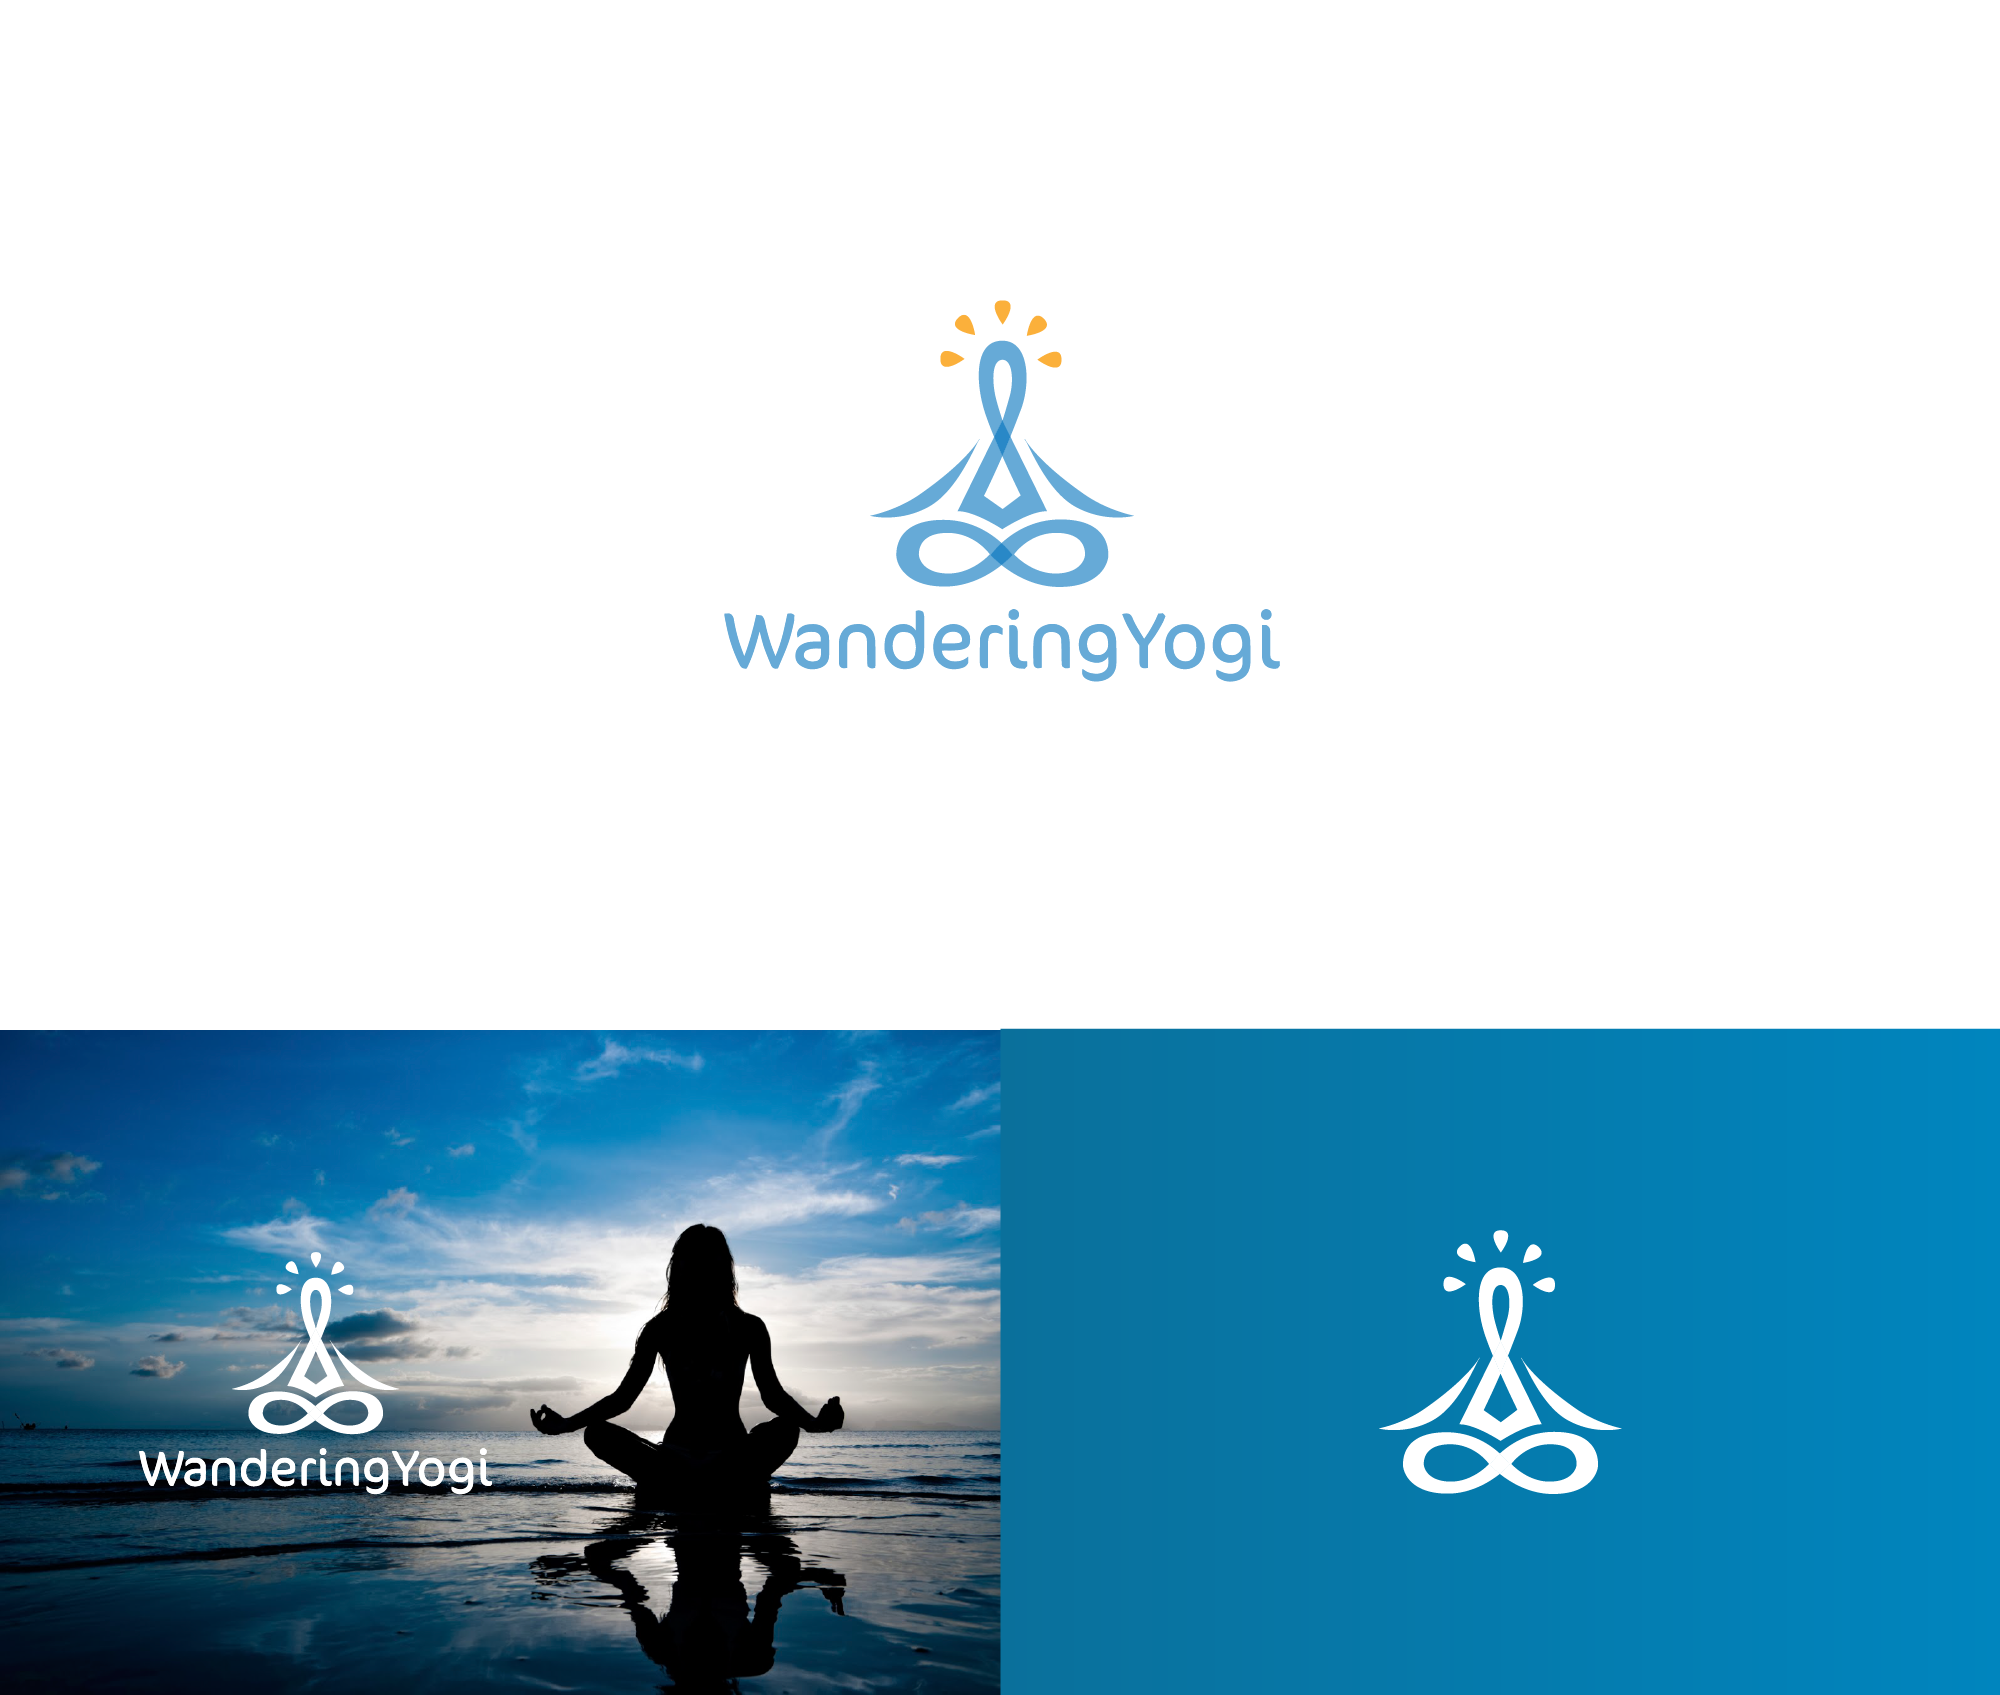 A brand identity pack for a Wandering Yogi